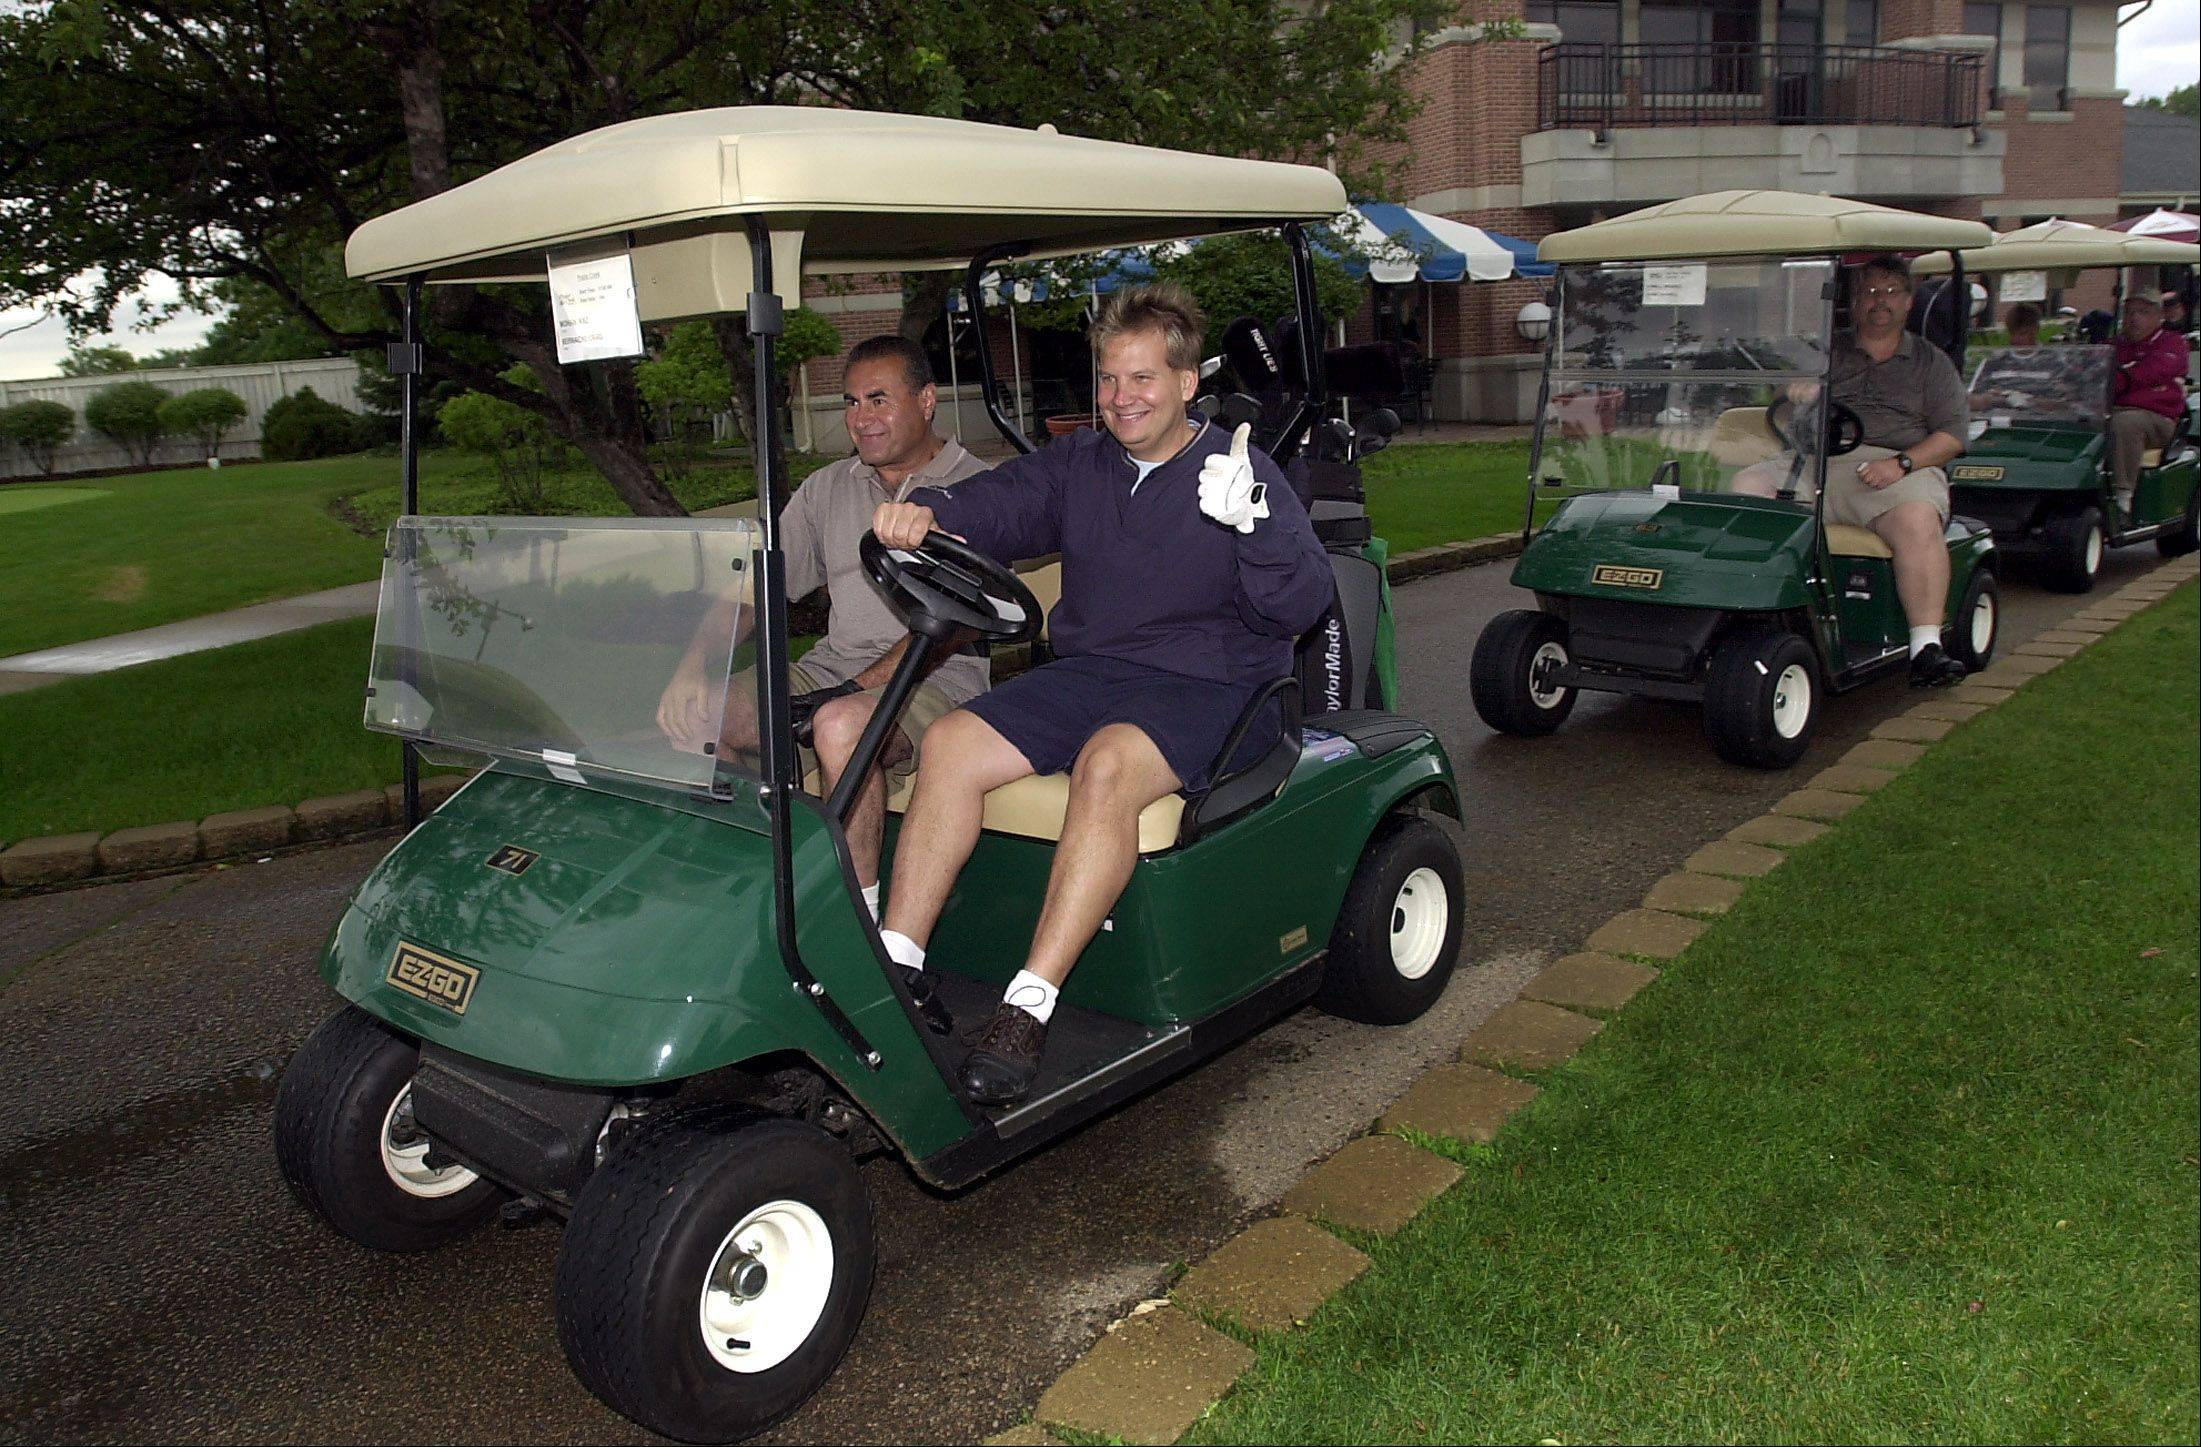 Hoffman Estates Park Commissioner Craig Bernacki gives the thumbs up at the park foundation's annual community golf outing in 2003.